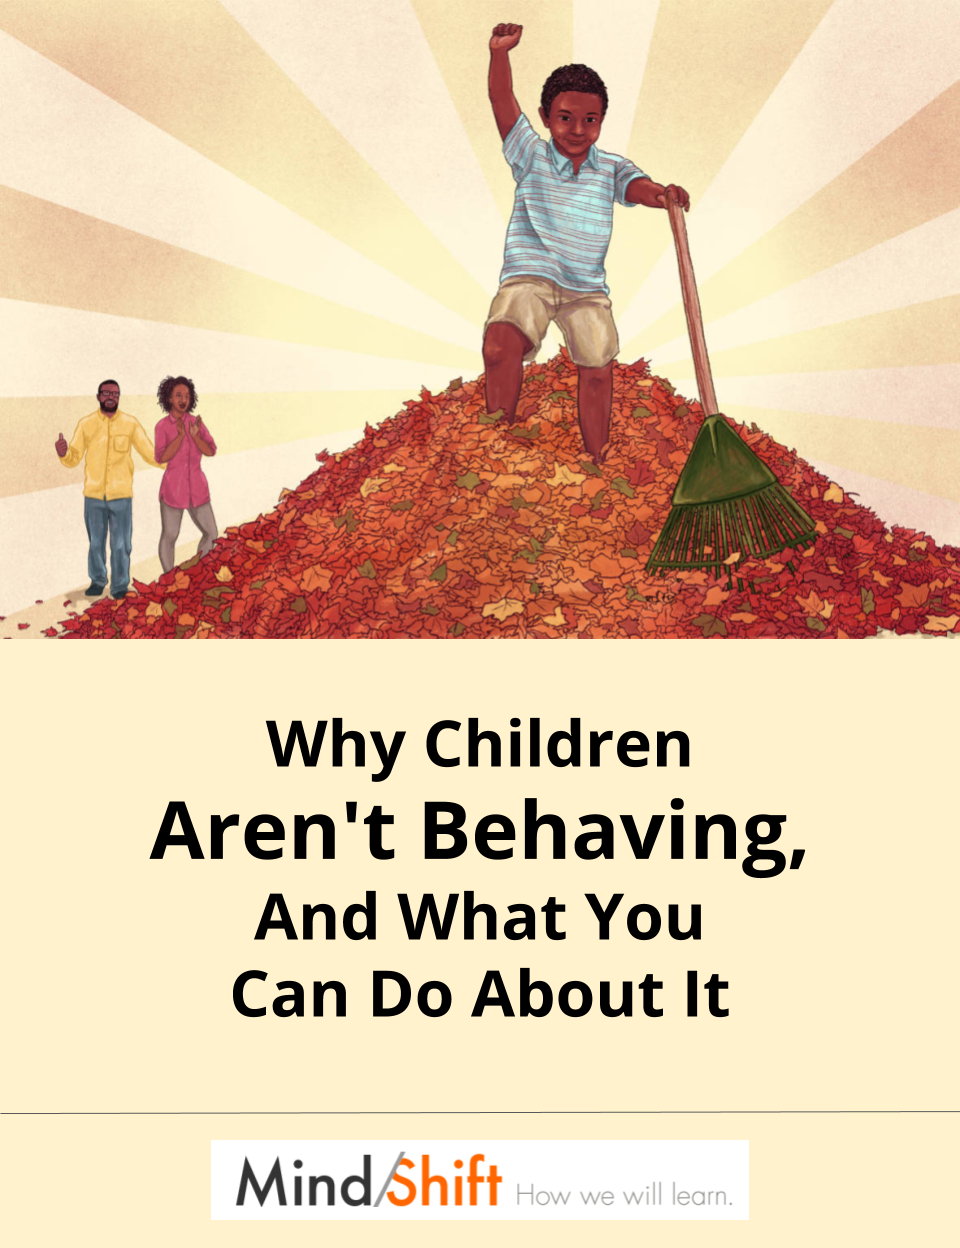 Why Children Arent Behaving And What >> Why Children Aren T Behaving And What You Can Do About It